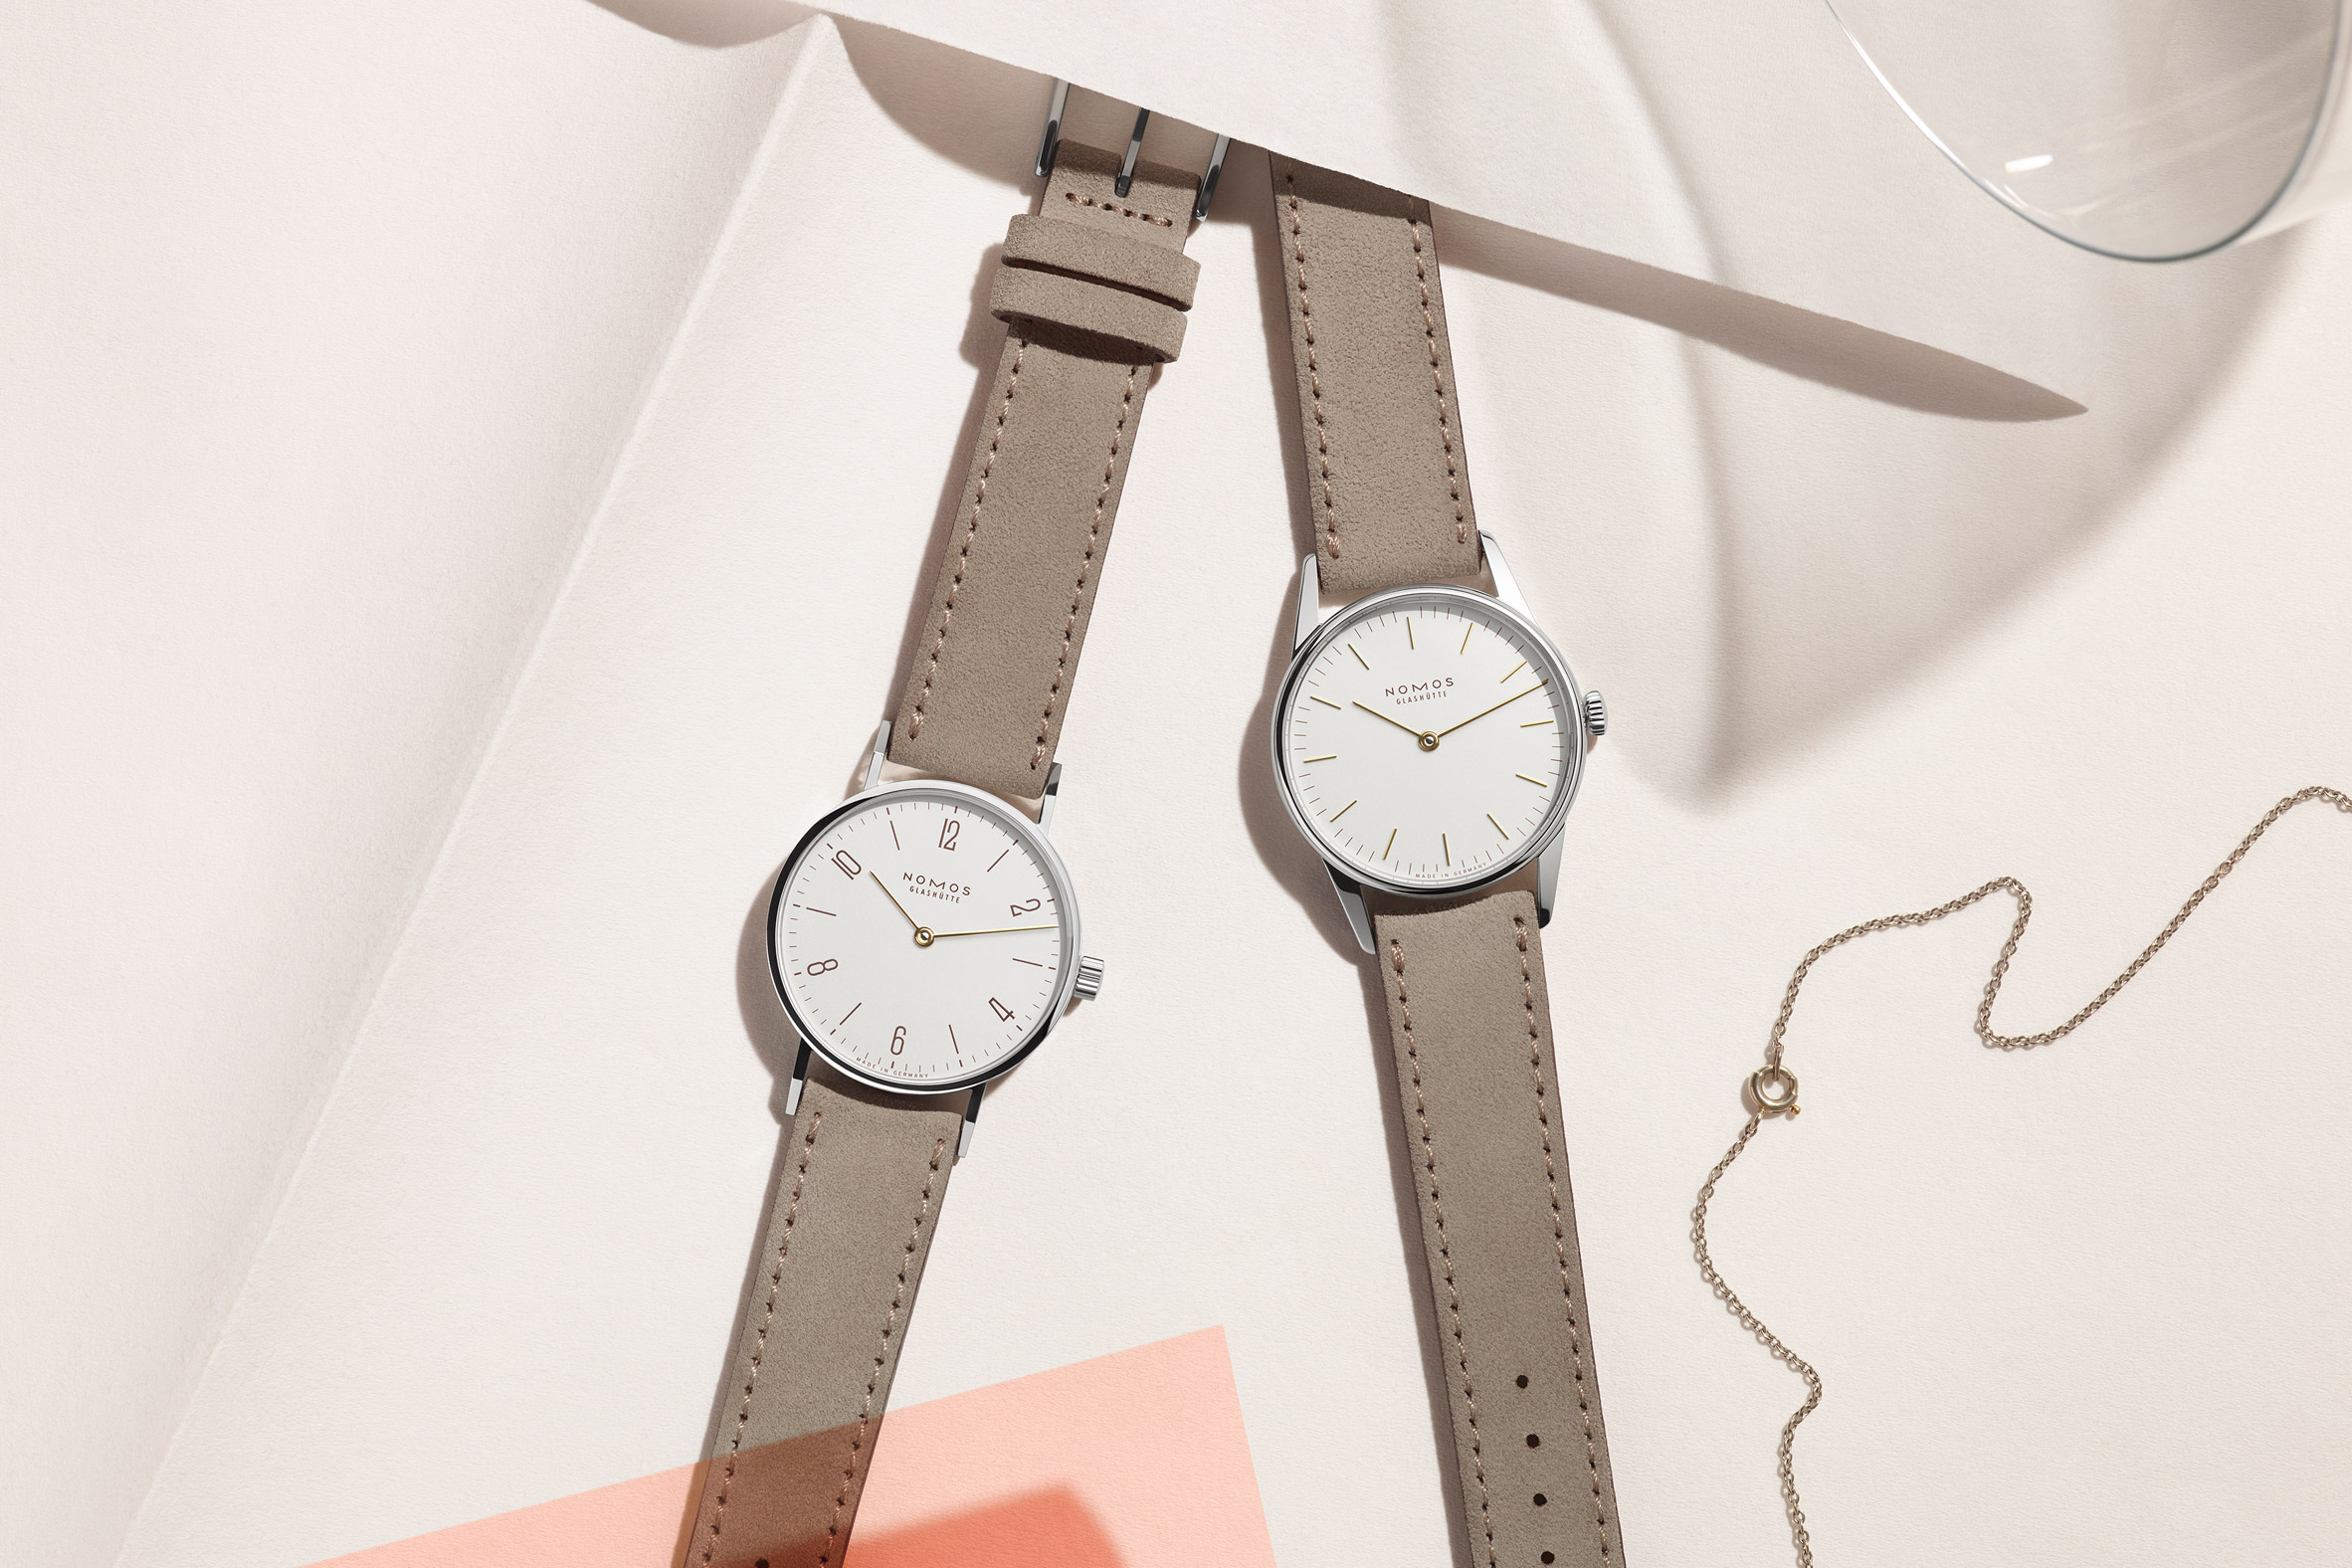 Duo watches by Nomos Glarshütte